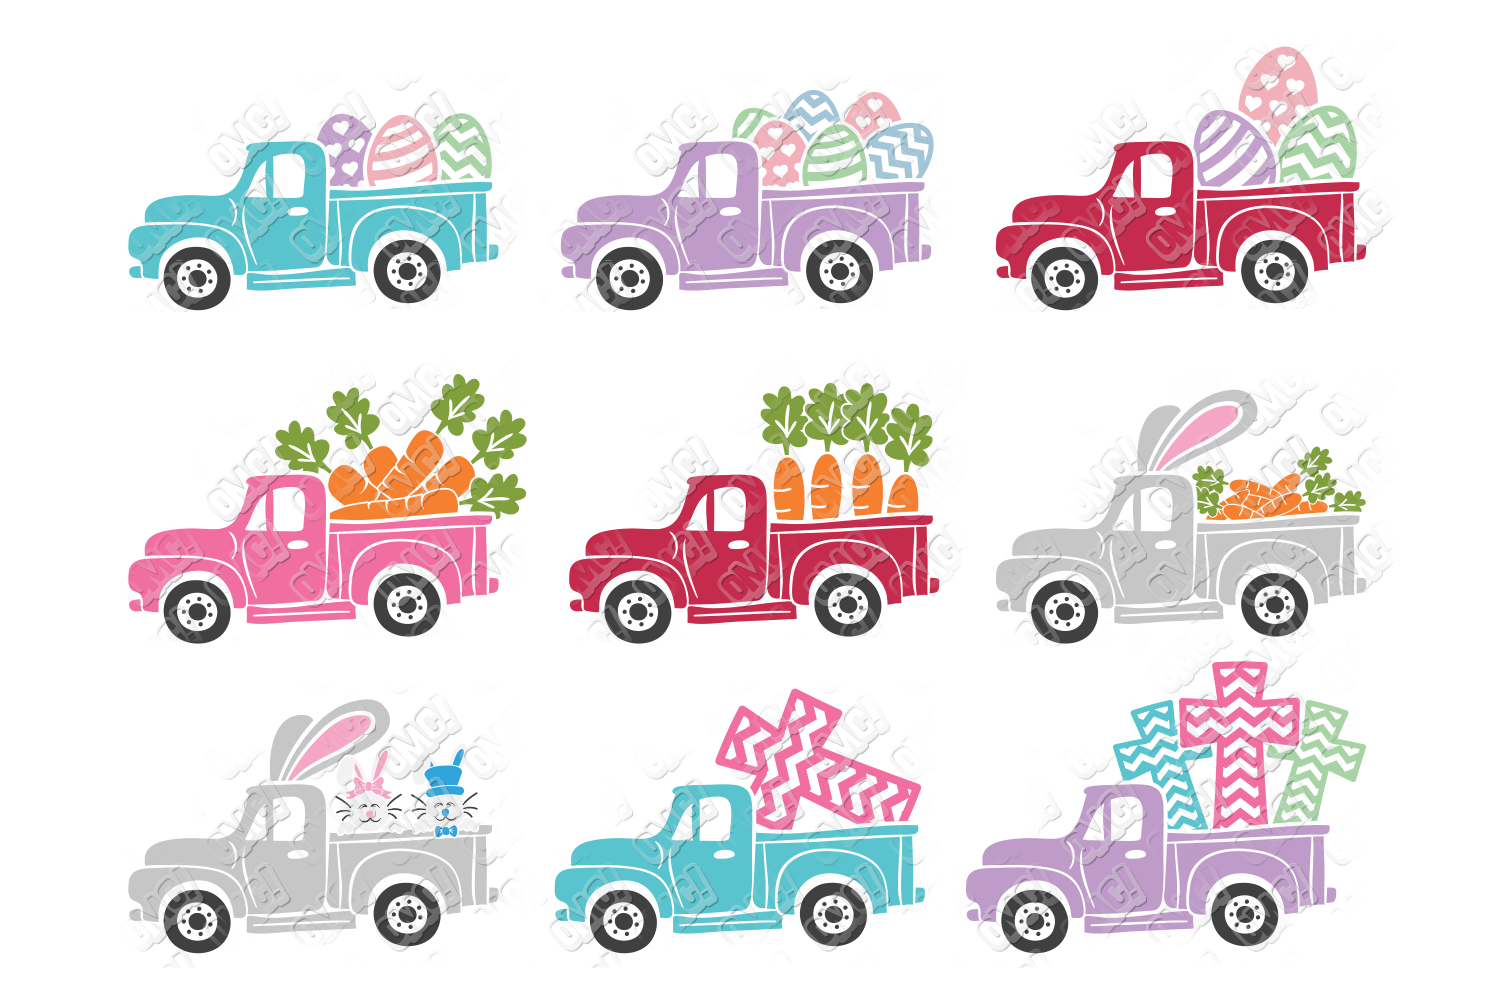 Easter Truck SVG Dump Truck in SVG, DXF, PNG, EPS, JPEG example image 2